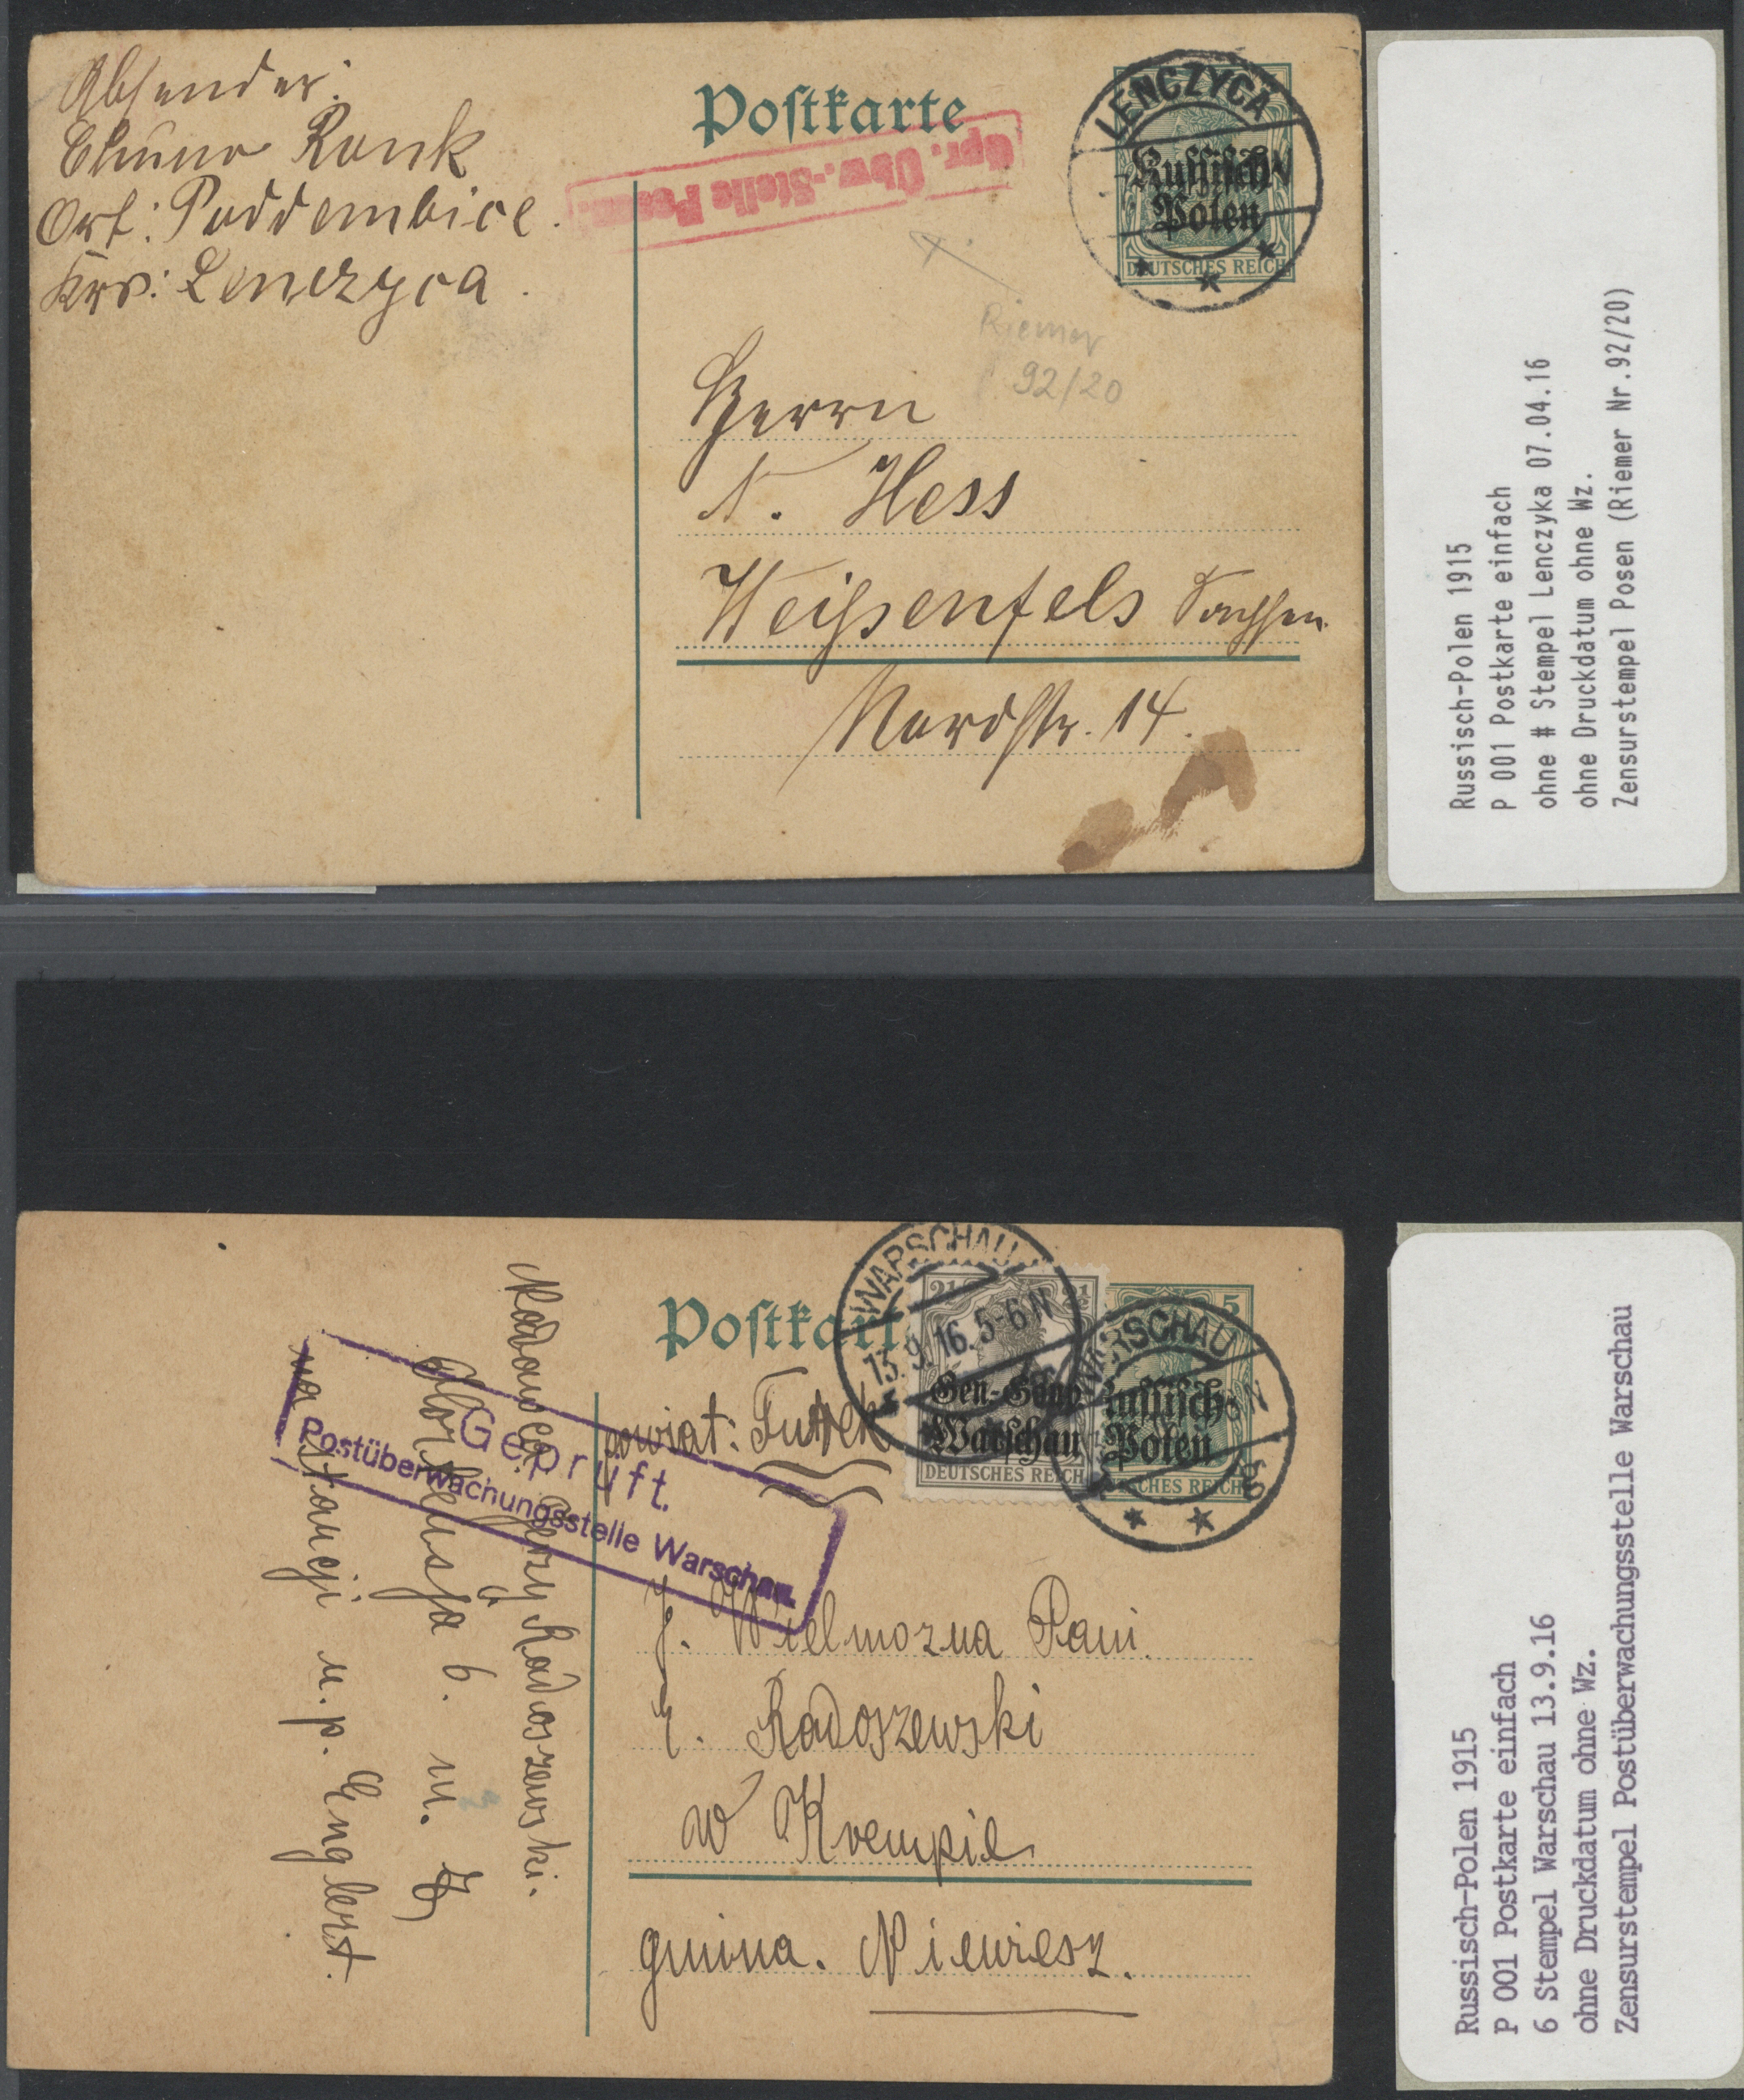 Lot 37313 - deutsche besetzung i. wk  -  Auktionshaus Christoph Gärtner GmbH & Co. KG Collections Germany,  Collections Supplement, Surprise boxes #39 Day 7